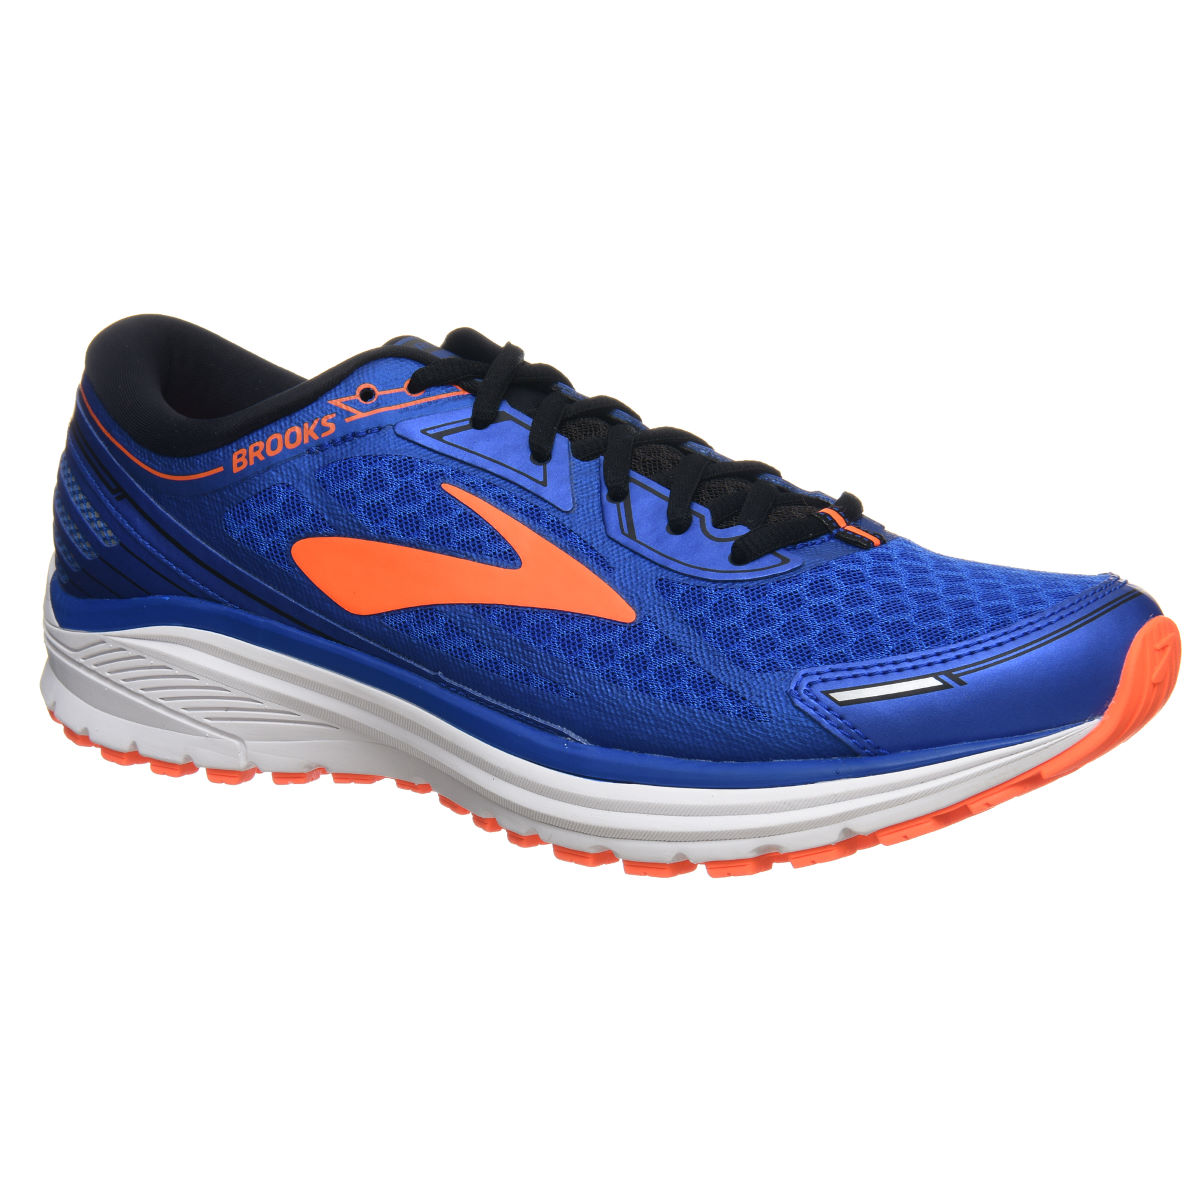 Chaussures Brooks Aduro 5 - UK 9 Blue/Orange Chaussures de running